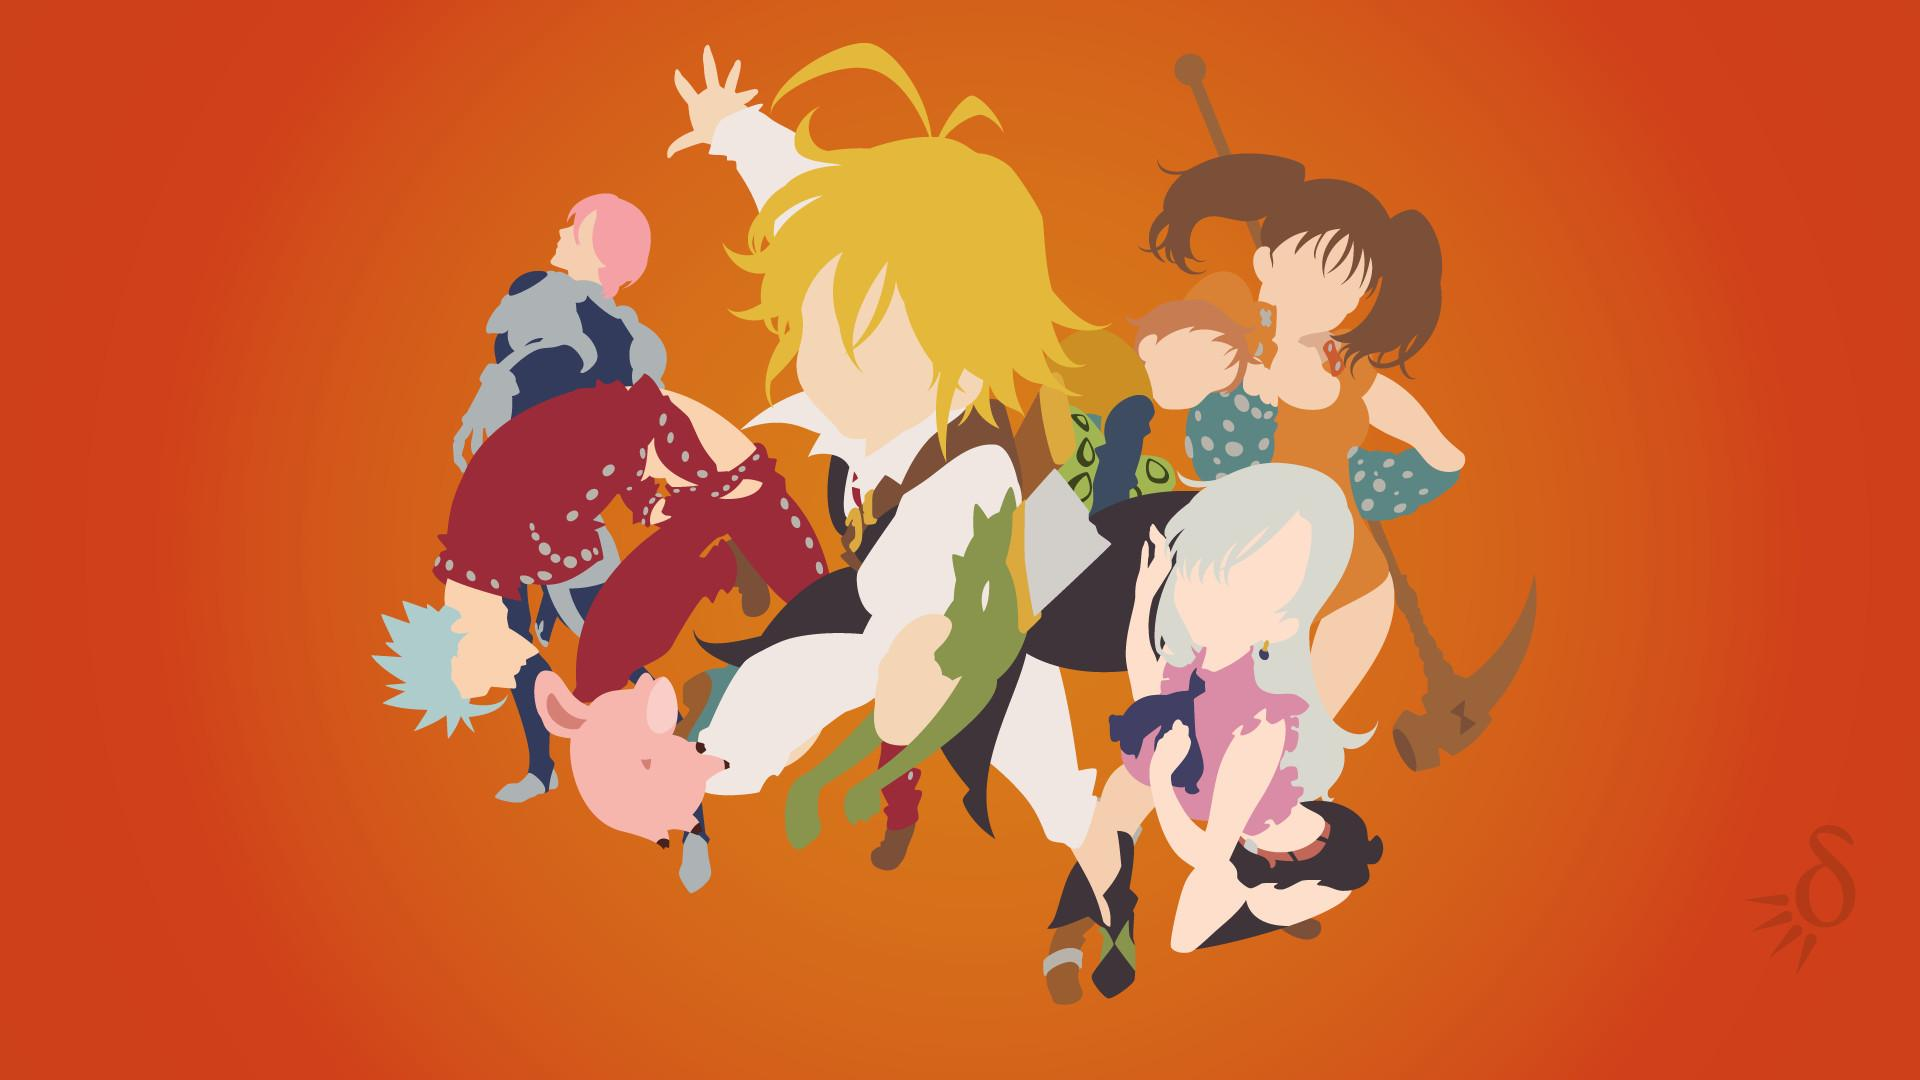 Seven Deadly Sins Minimalist Wallpapers Wallpaper Cave